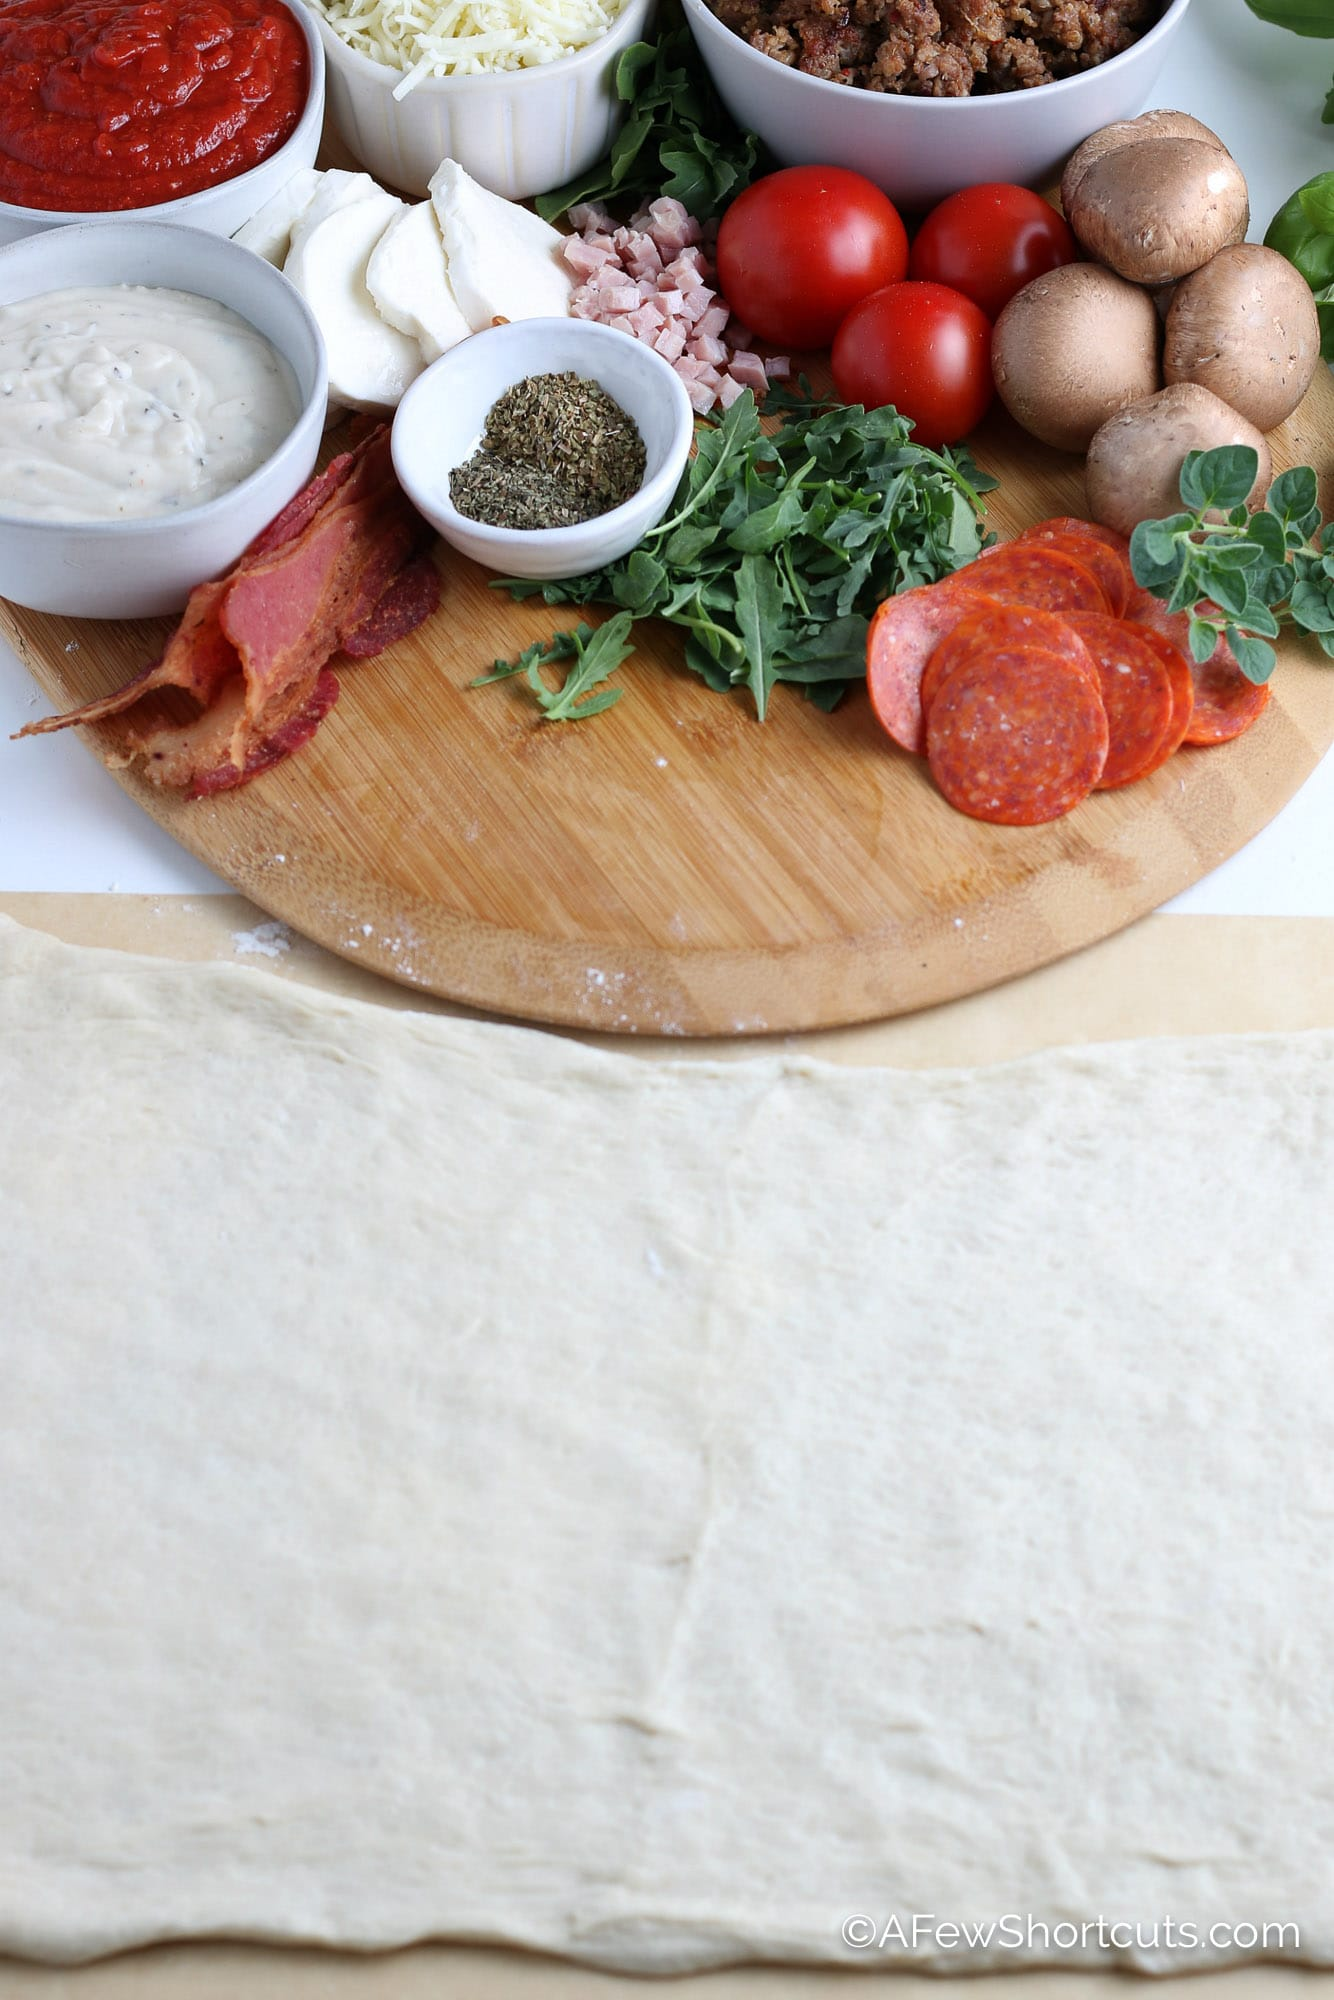 PIzza ingredients and dough